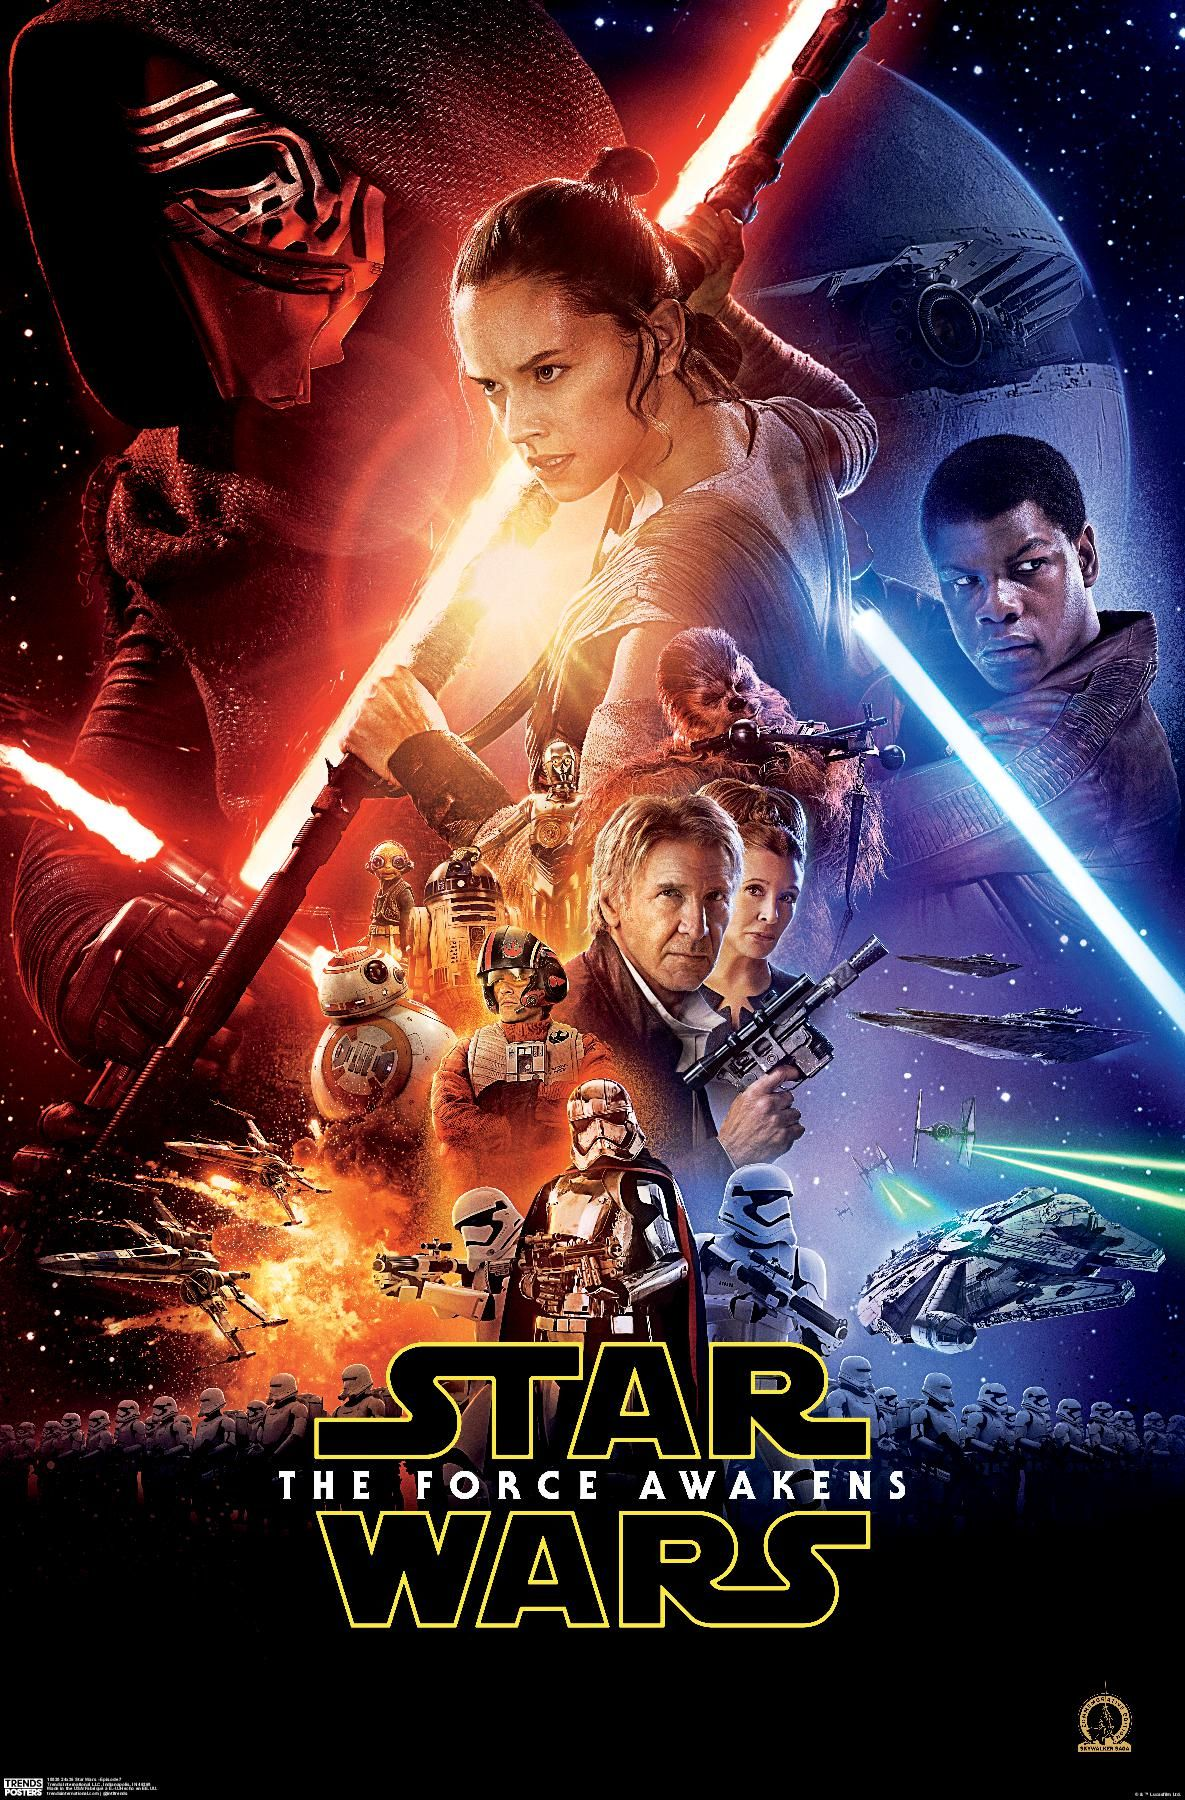 24x36 Star Wars: The Force Awakens - One Sheet Poster